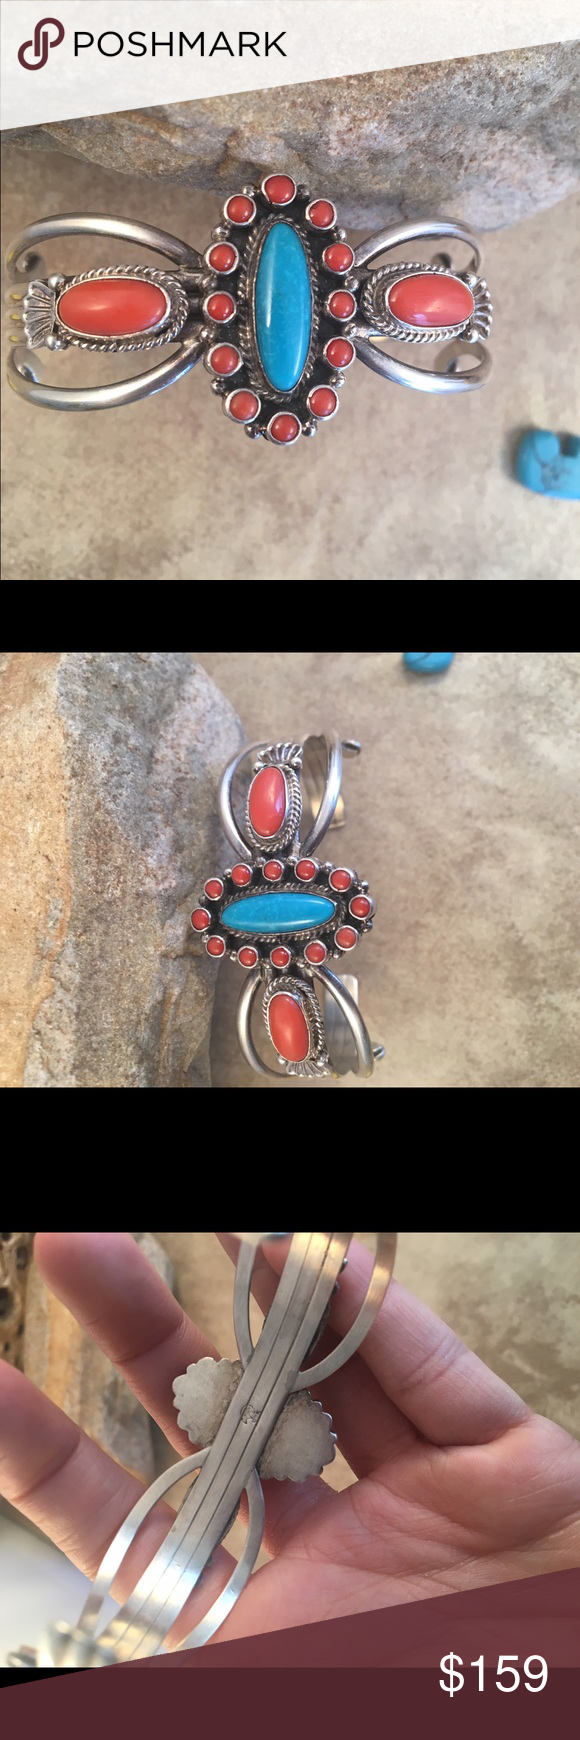 Vintage Navajo Turquoise & Coral Cuff Bracelet This is a vintage Navajo Turquoise, Coral and Sterling Silver Cuff bracelet. This piece is signed by the artist and stamped Sterling. The width of this bracelet is 1 1/8  inches with an inner circumference of 5 1/2 inches and a gap of 1 3/8 inches. This bracelet is in excellent vintage condition.   Thank you for looking, please contact me with any questions. Jewelry Bracelets